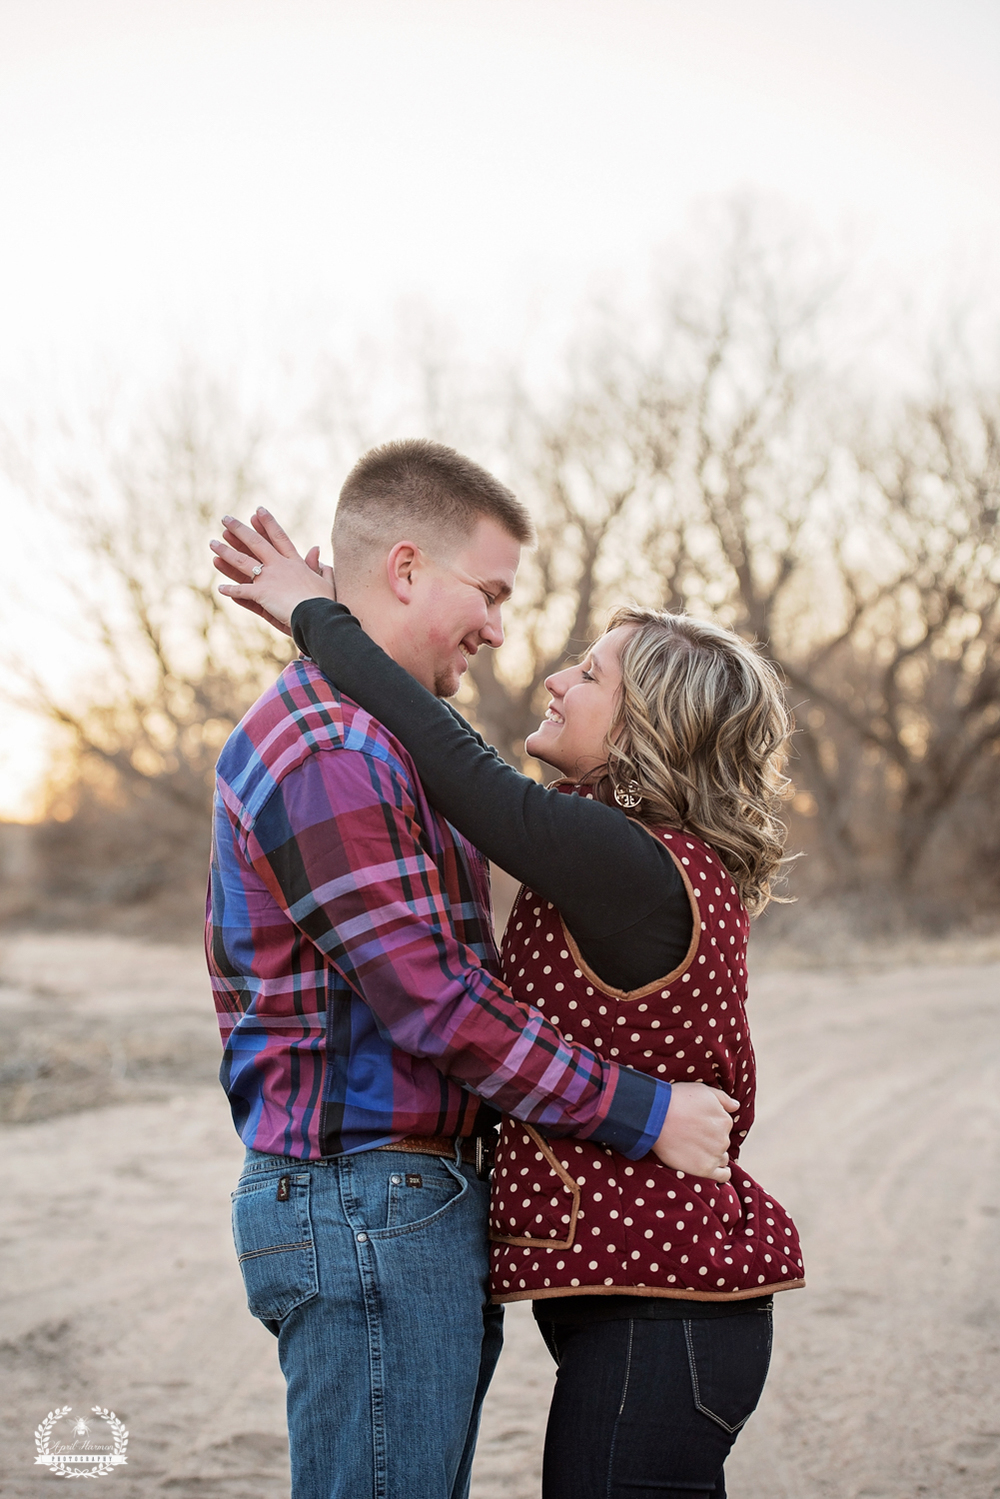 southwest-kansas-engagement-photography34.jpg